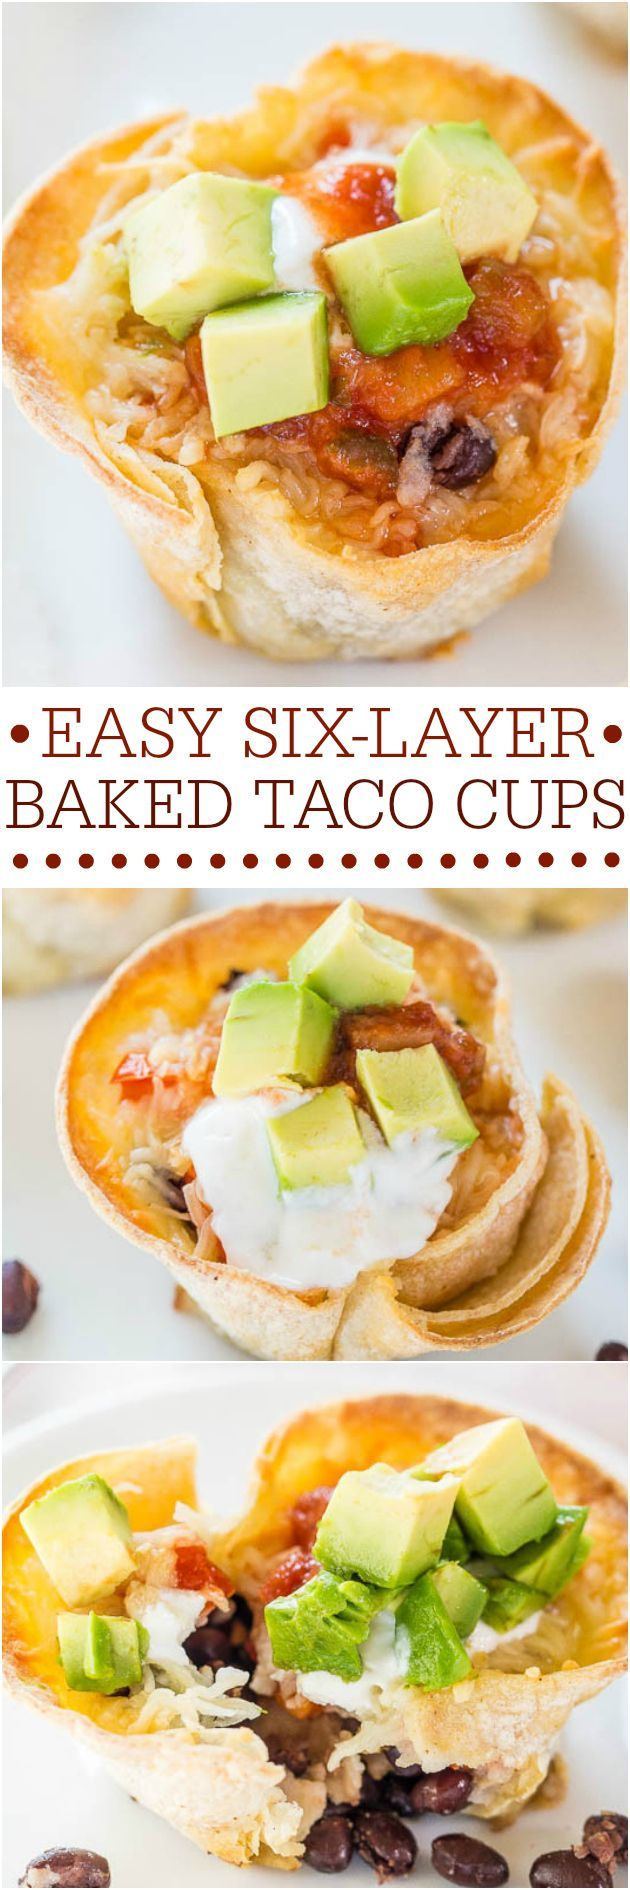 Easy Six-Layer Baked Taco Cups - Fast, easy, and accidentally healthy ...